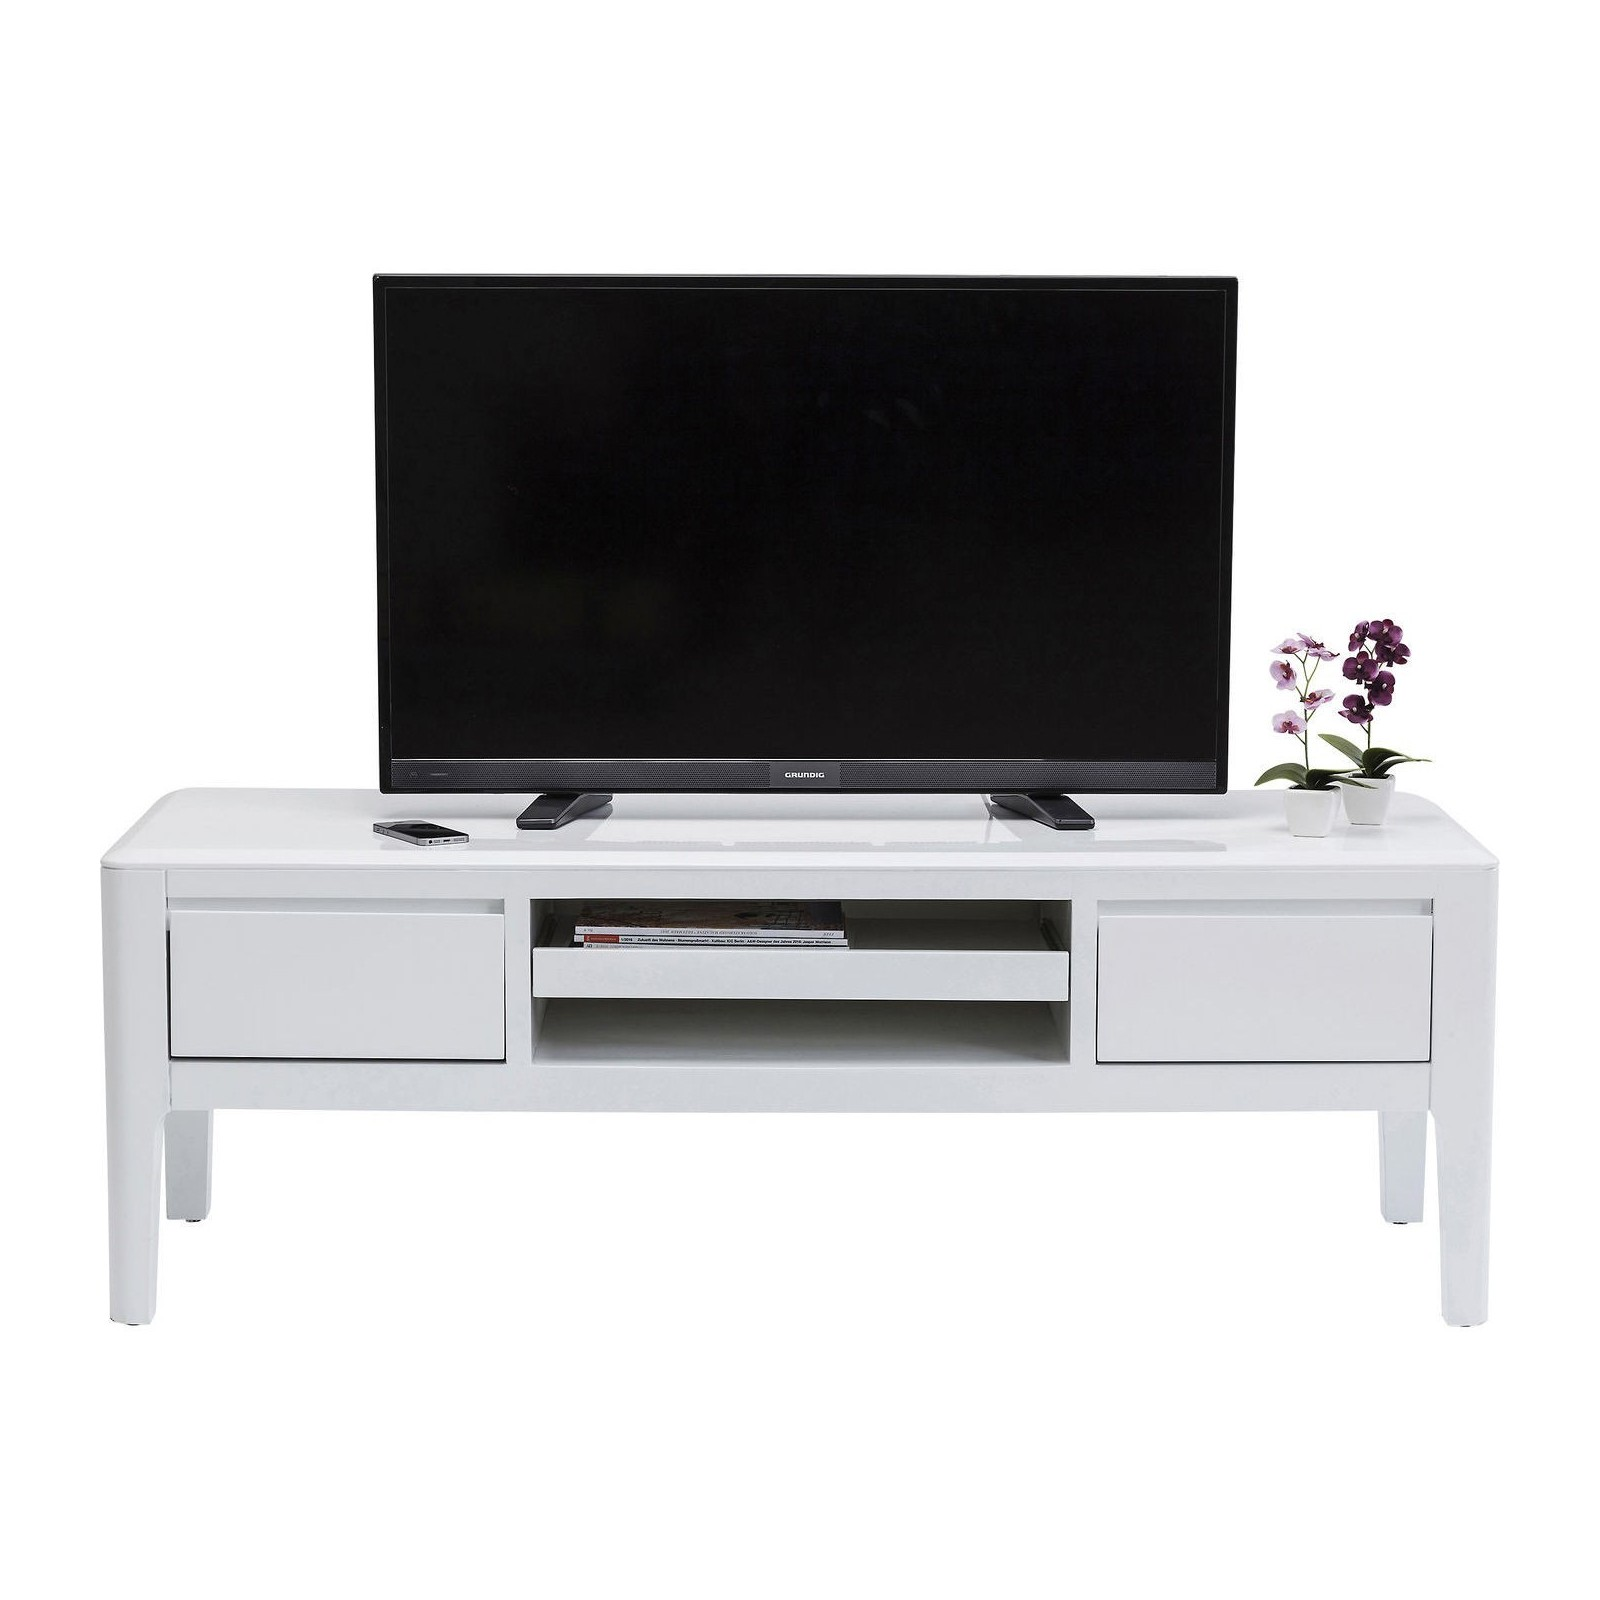 meuble tv design blanc brooklyn kare design. Black Bedroom Furniture Sets. Home Design Ideas